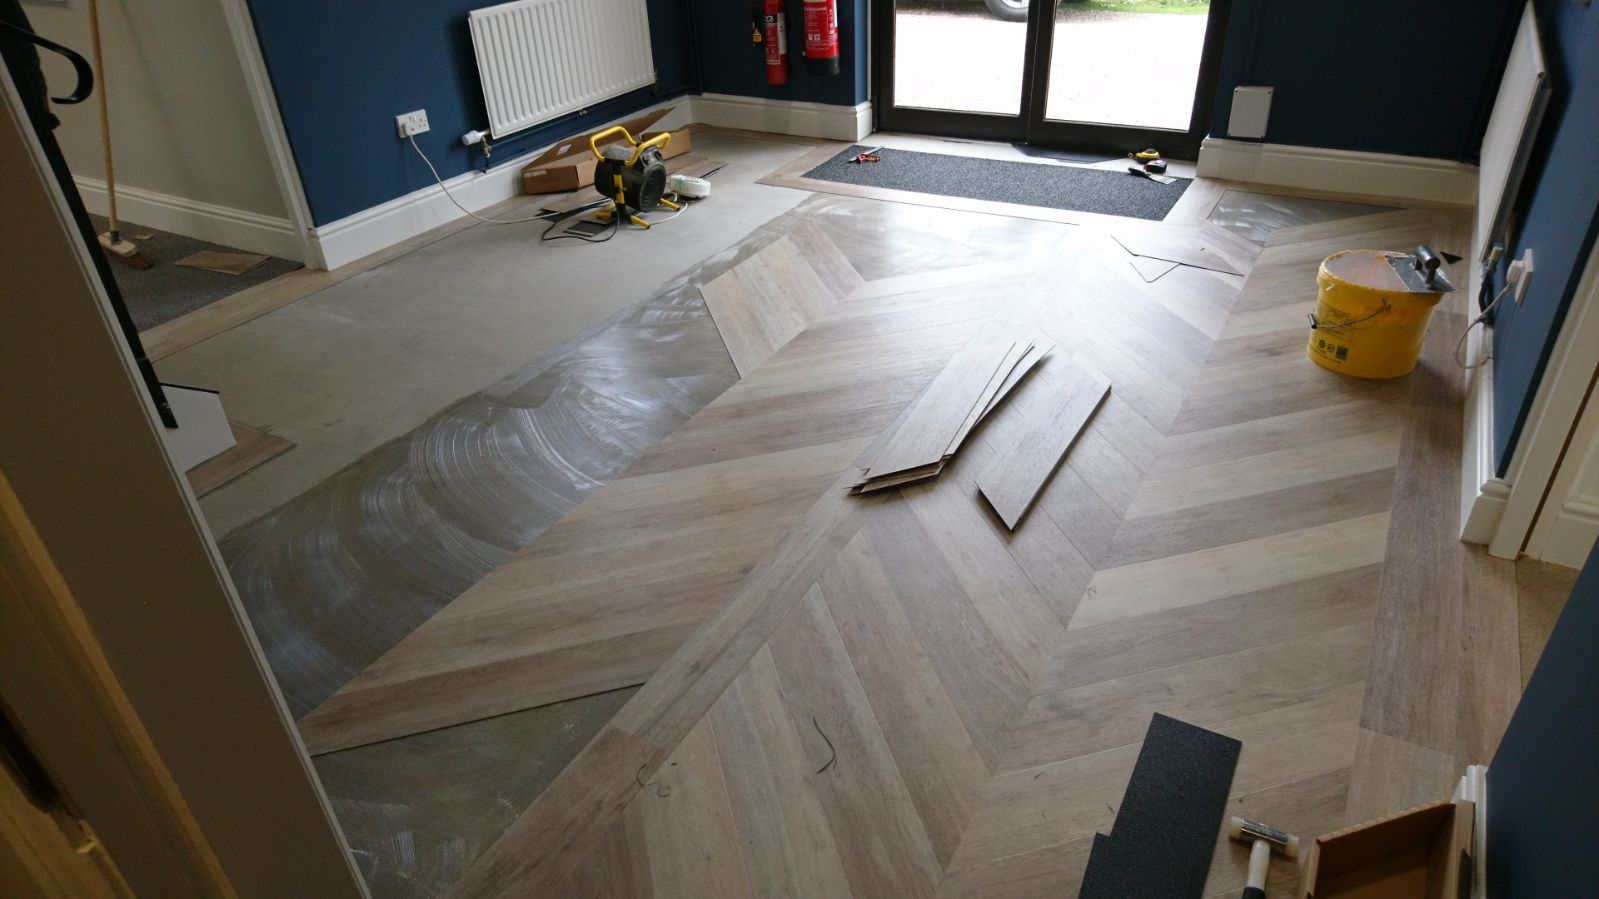 LVT being installed